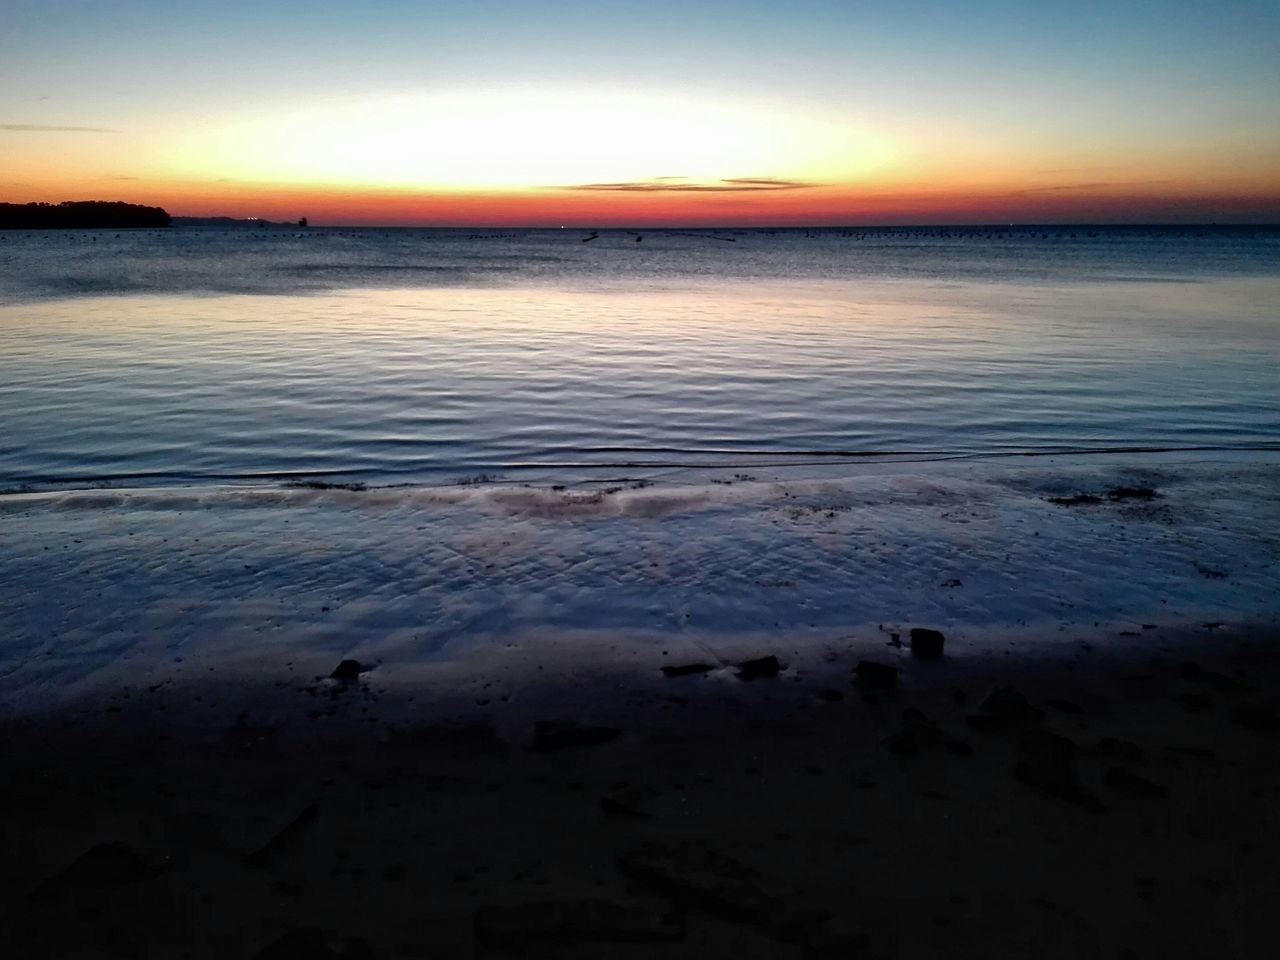 sunset, nature, beauty in nature, beach, sea, tranquility, scenics, tranquil scene, water, sky, outdoors, sun, sand, horizon over water, dusk, no people, silhouette, winter, wave, landscape, clear sky, low tide, day